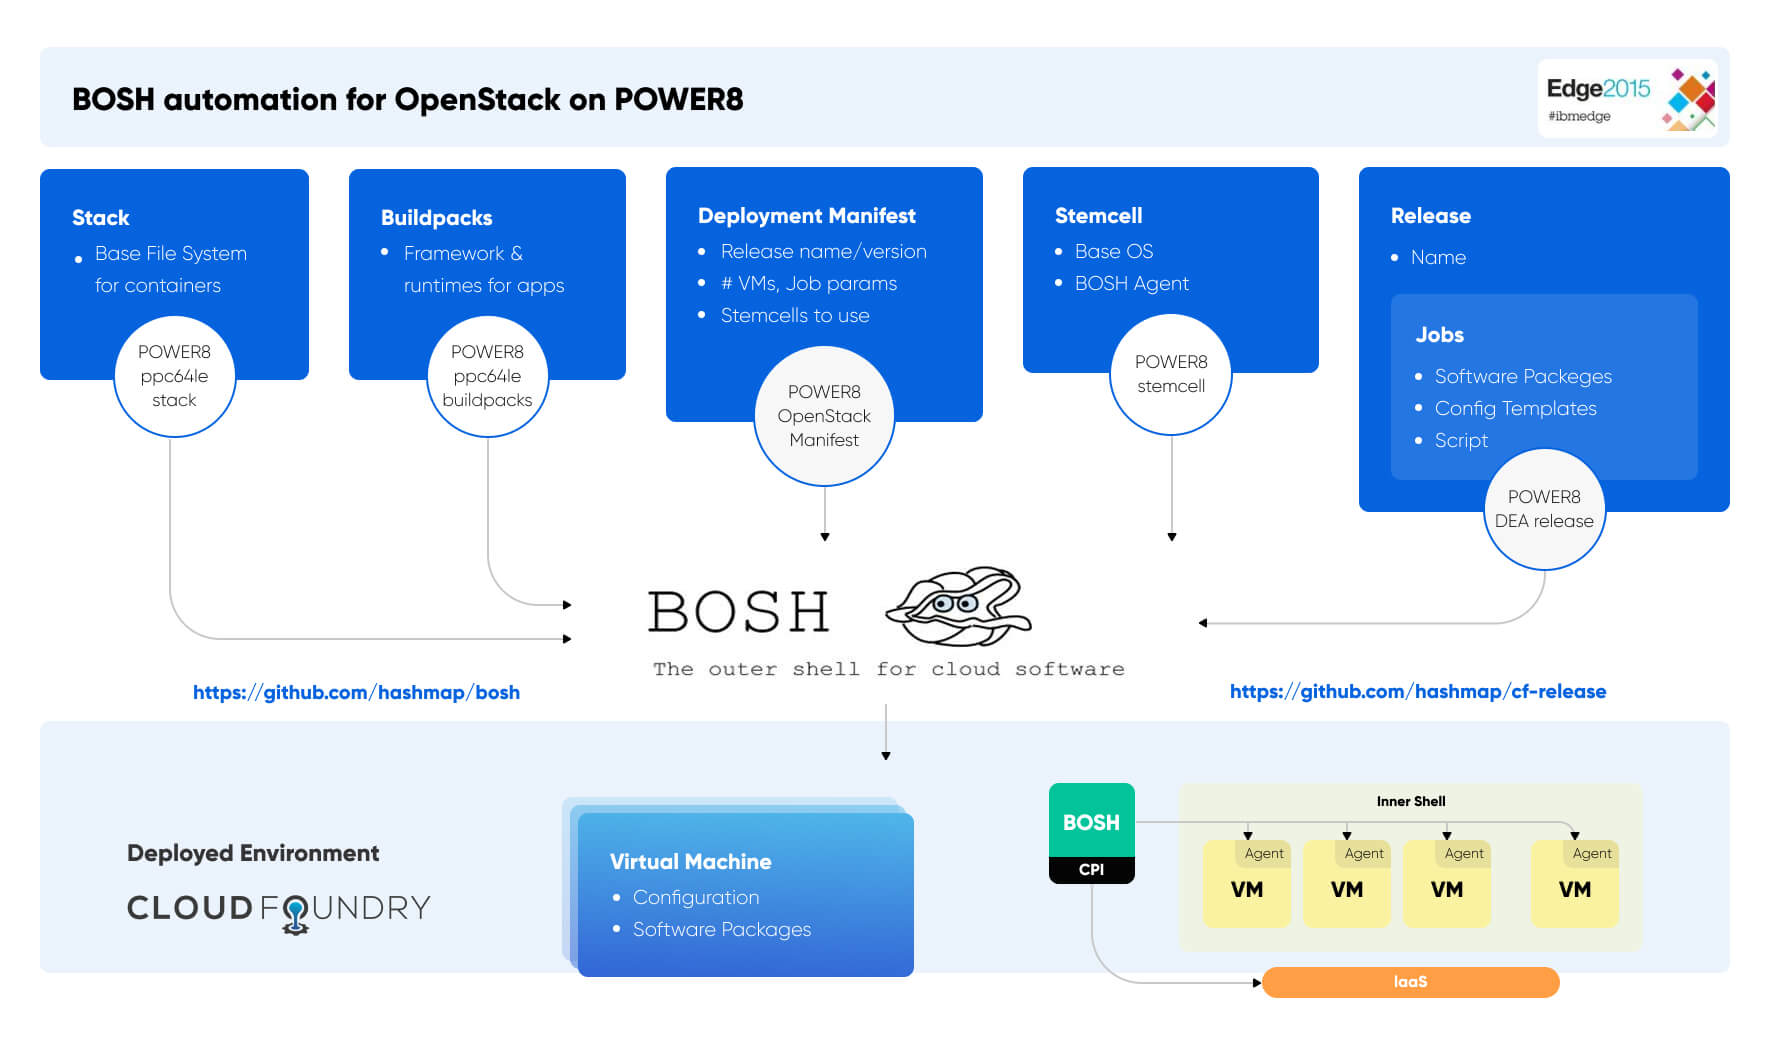 Automating Cloud Foundry / BOSH on Top of IBM POWER8 and OpenStack